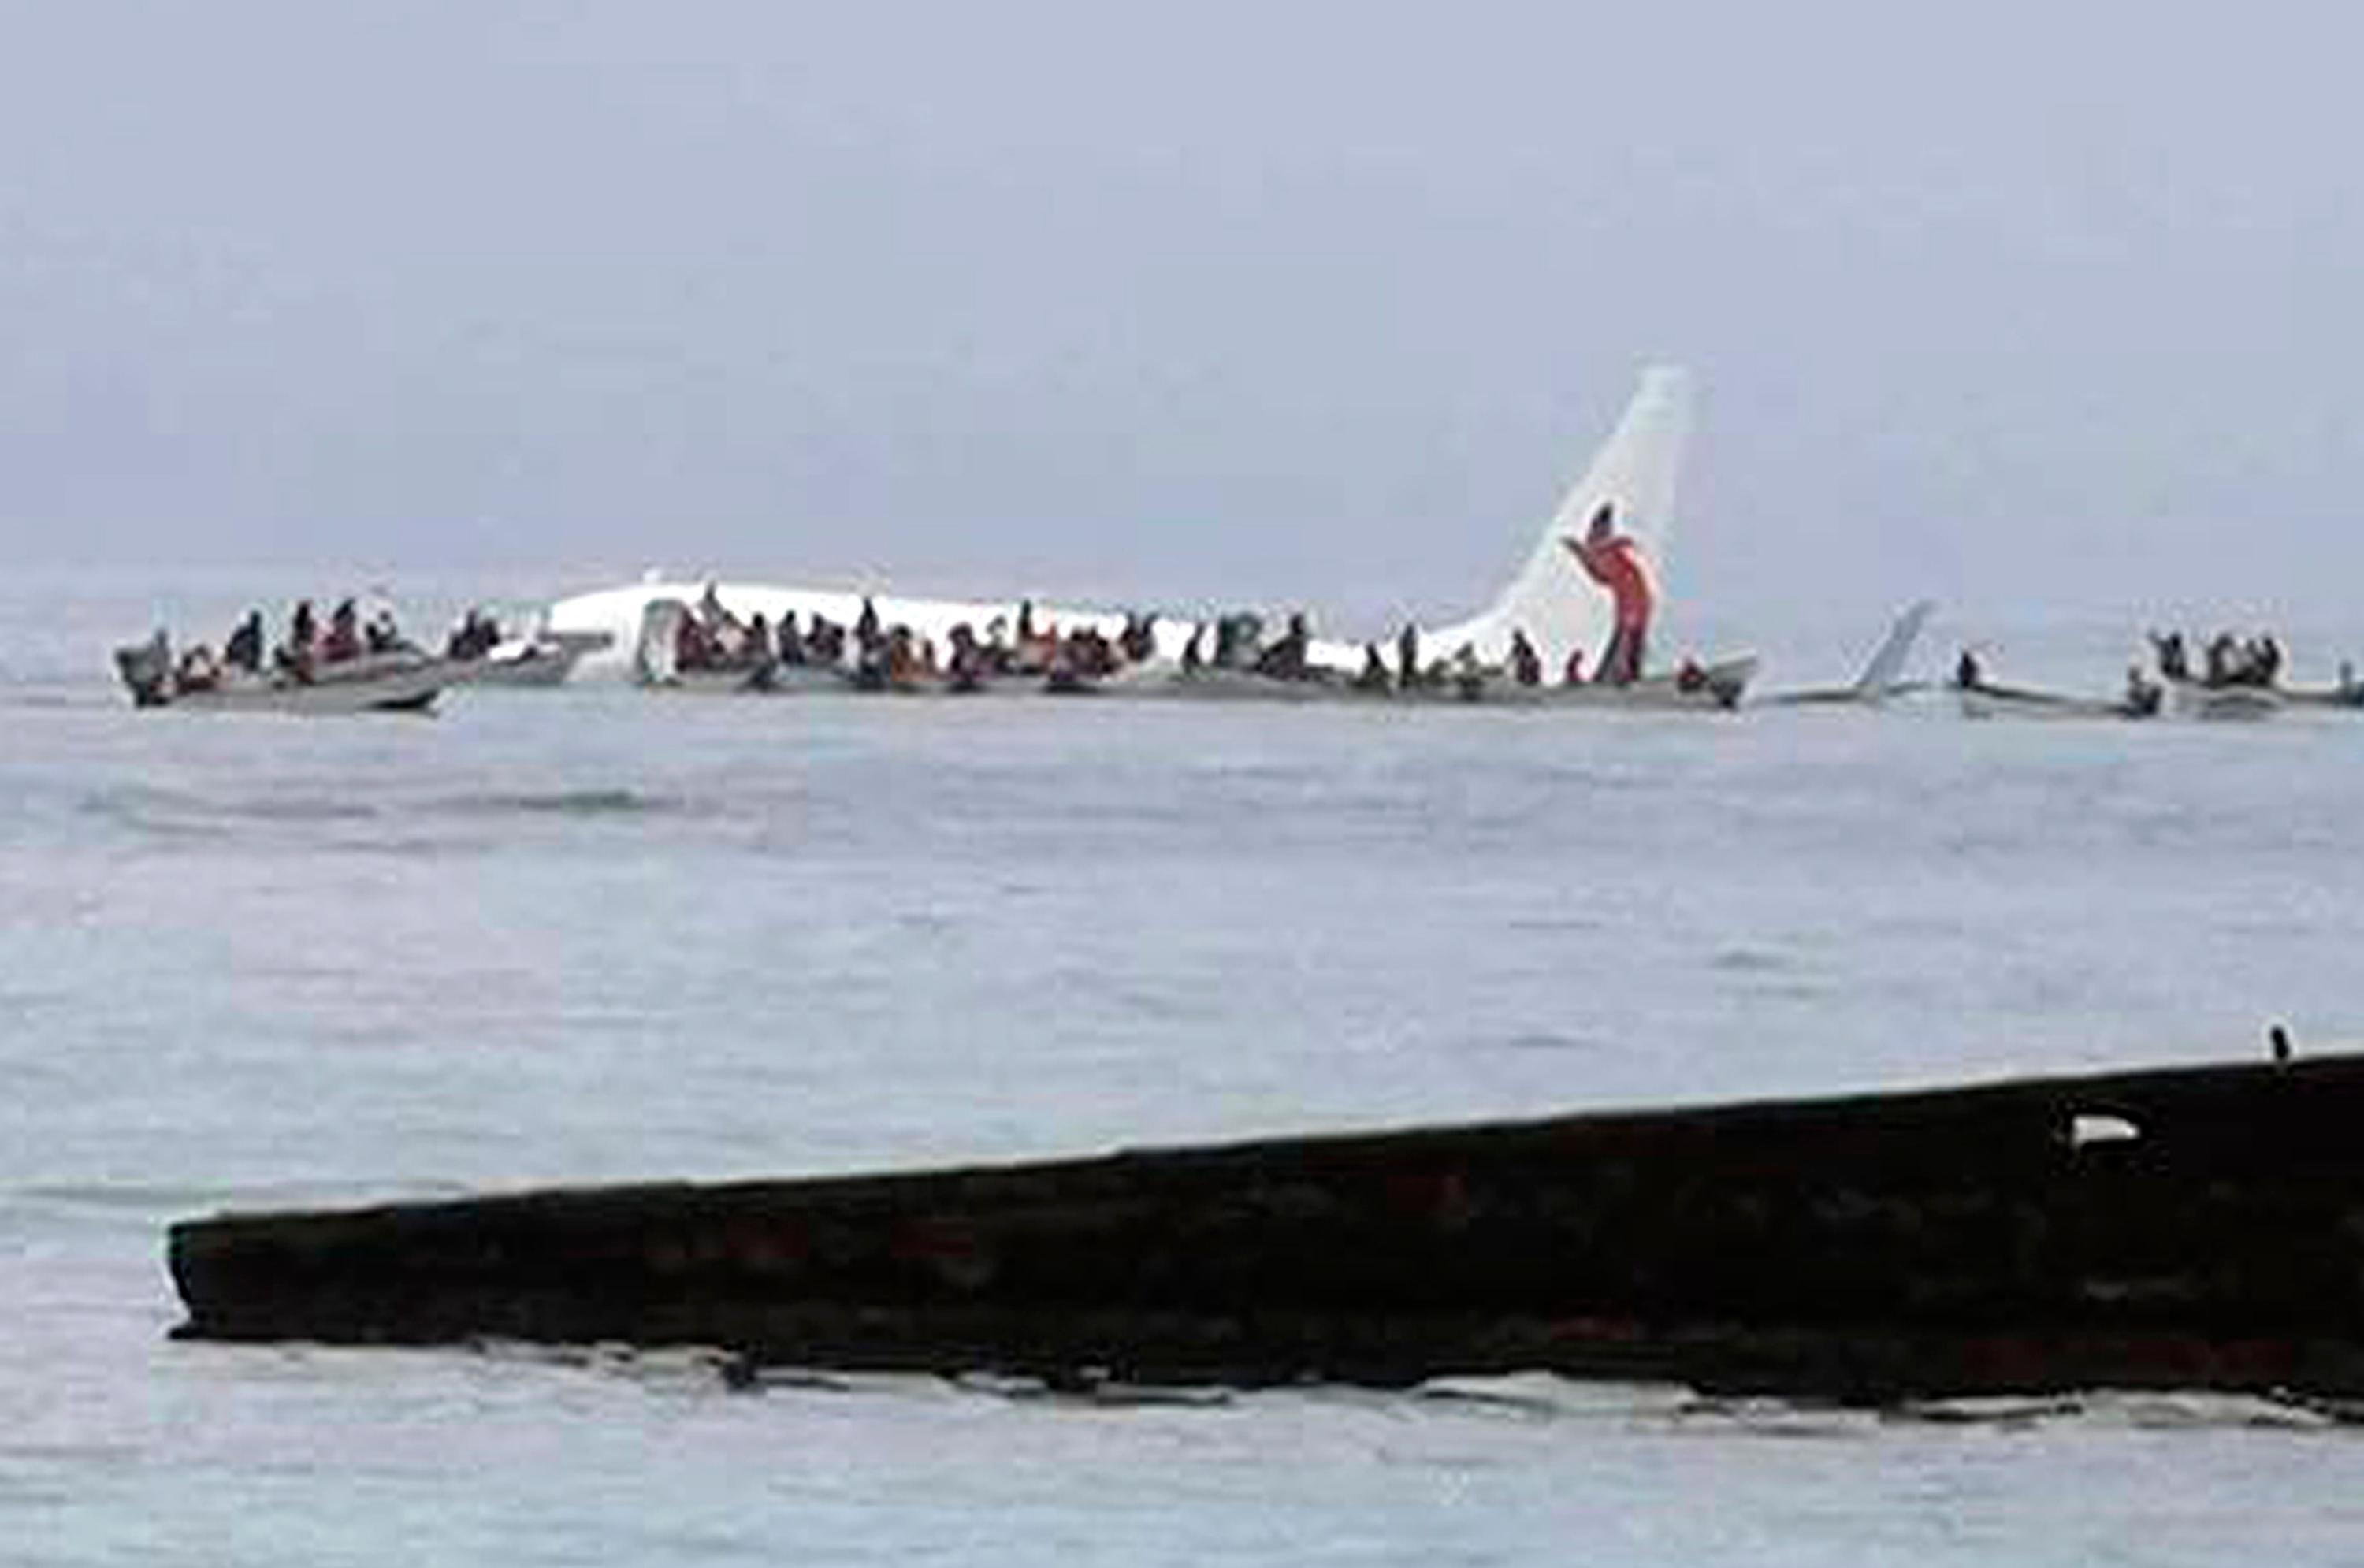 This photo provided by Blue Flag Construction shows an Air Niugini plane floating in Pacific lagoon after its crash-landing in Pacific lagoon near Chuuk Airport in Weno, Federated States of Micronesia, Friday, Sept. 28, 2018. All of the passengers and crew survived the crash landing. The Air Niugini plane hit the water short of the runway while trying to land at Chuuk Island, according to the airline. (Blue Flag Construction via AP)